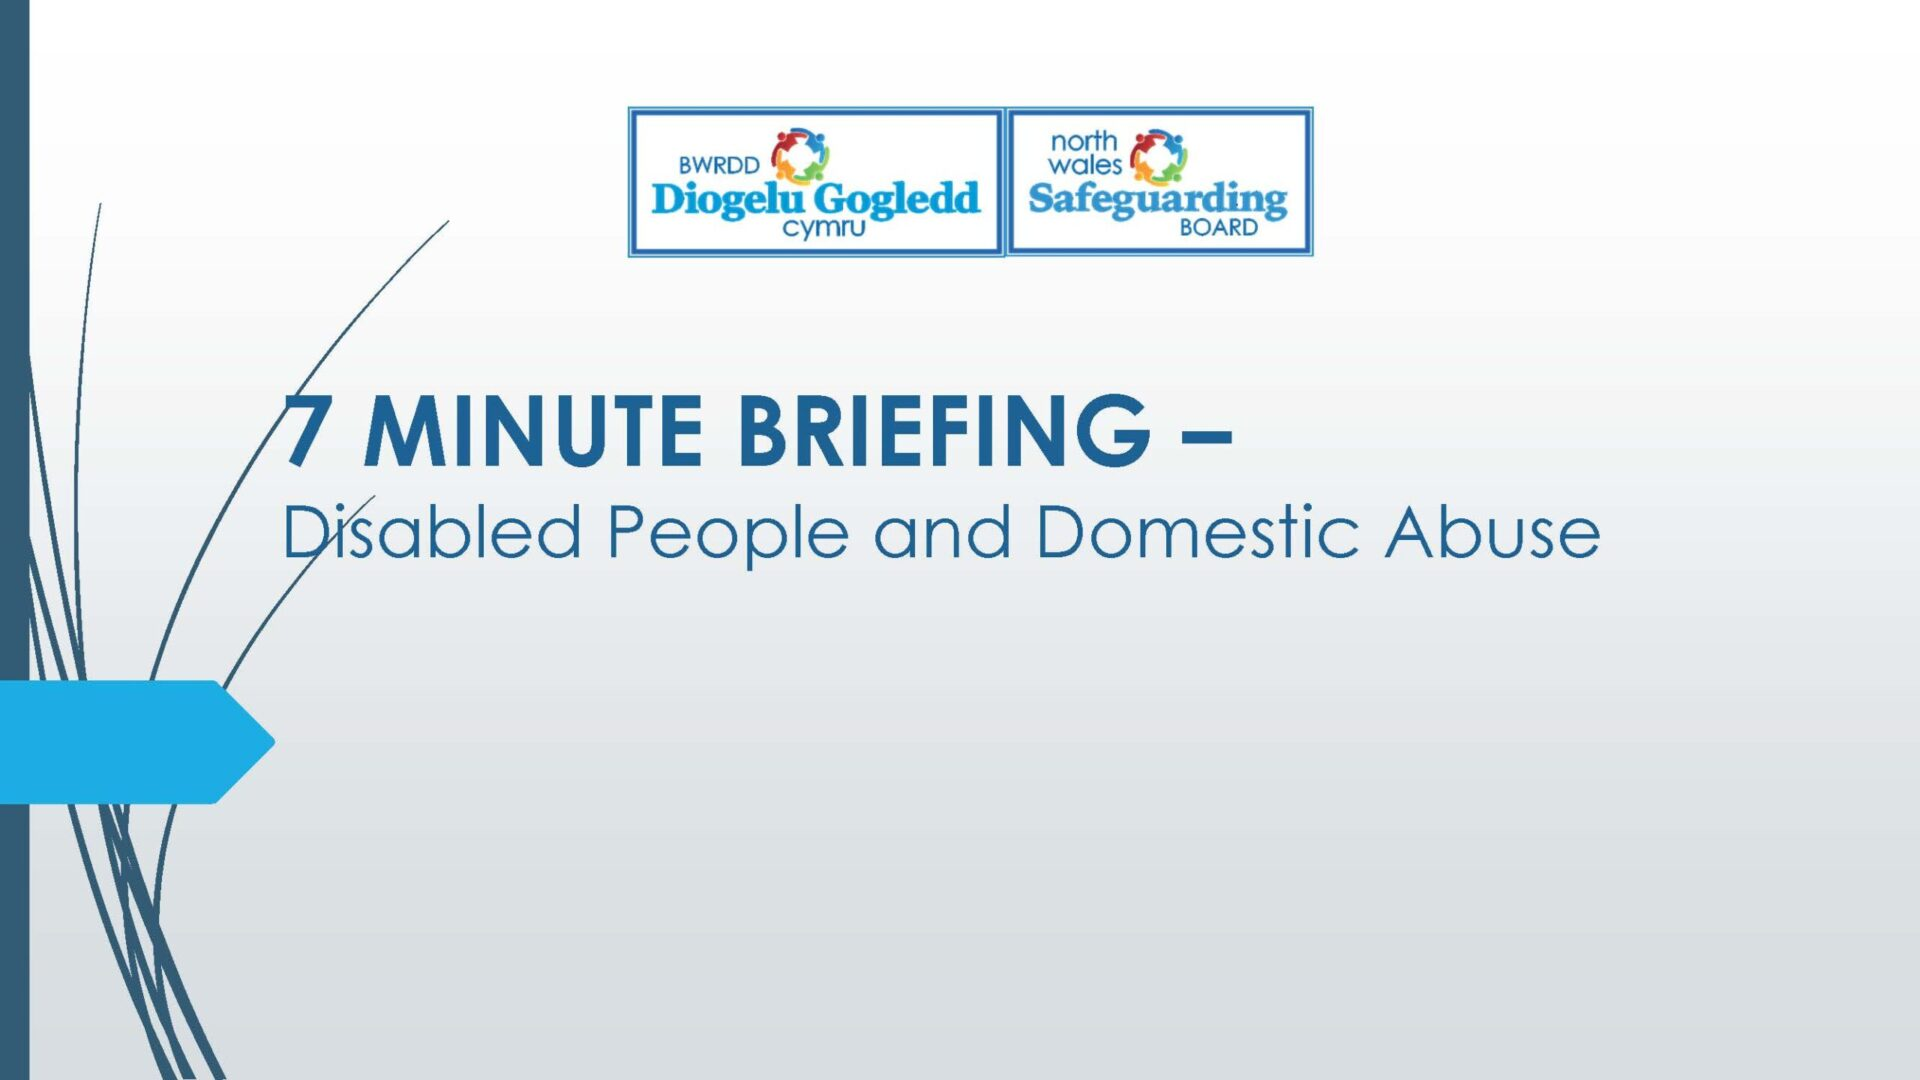 Disabled People and Domestic Abuse